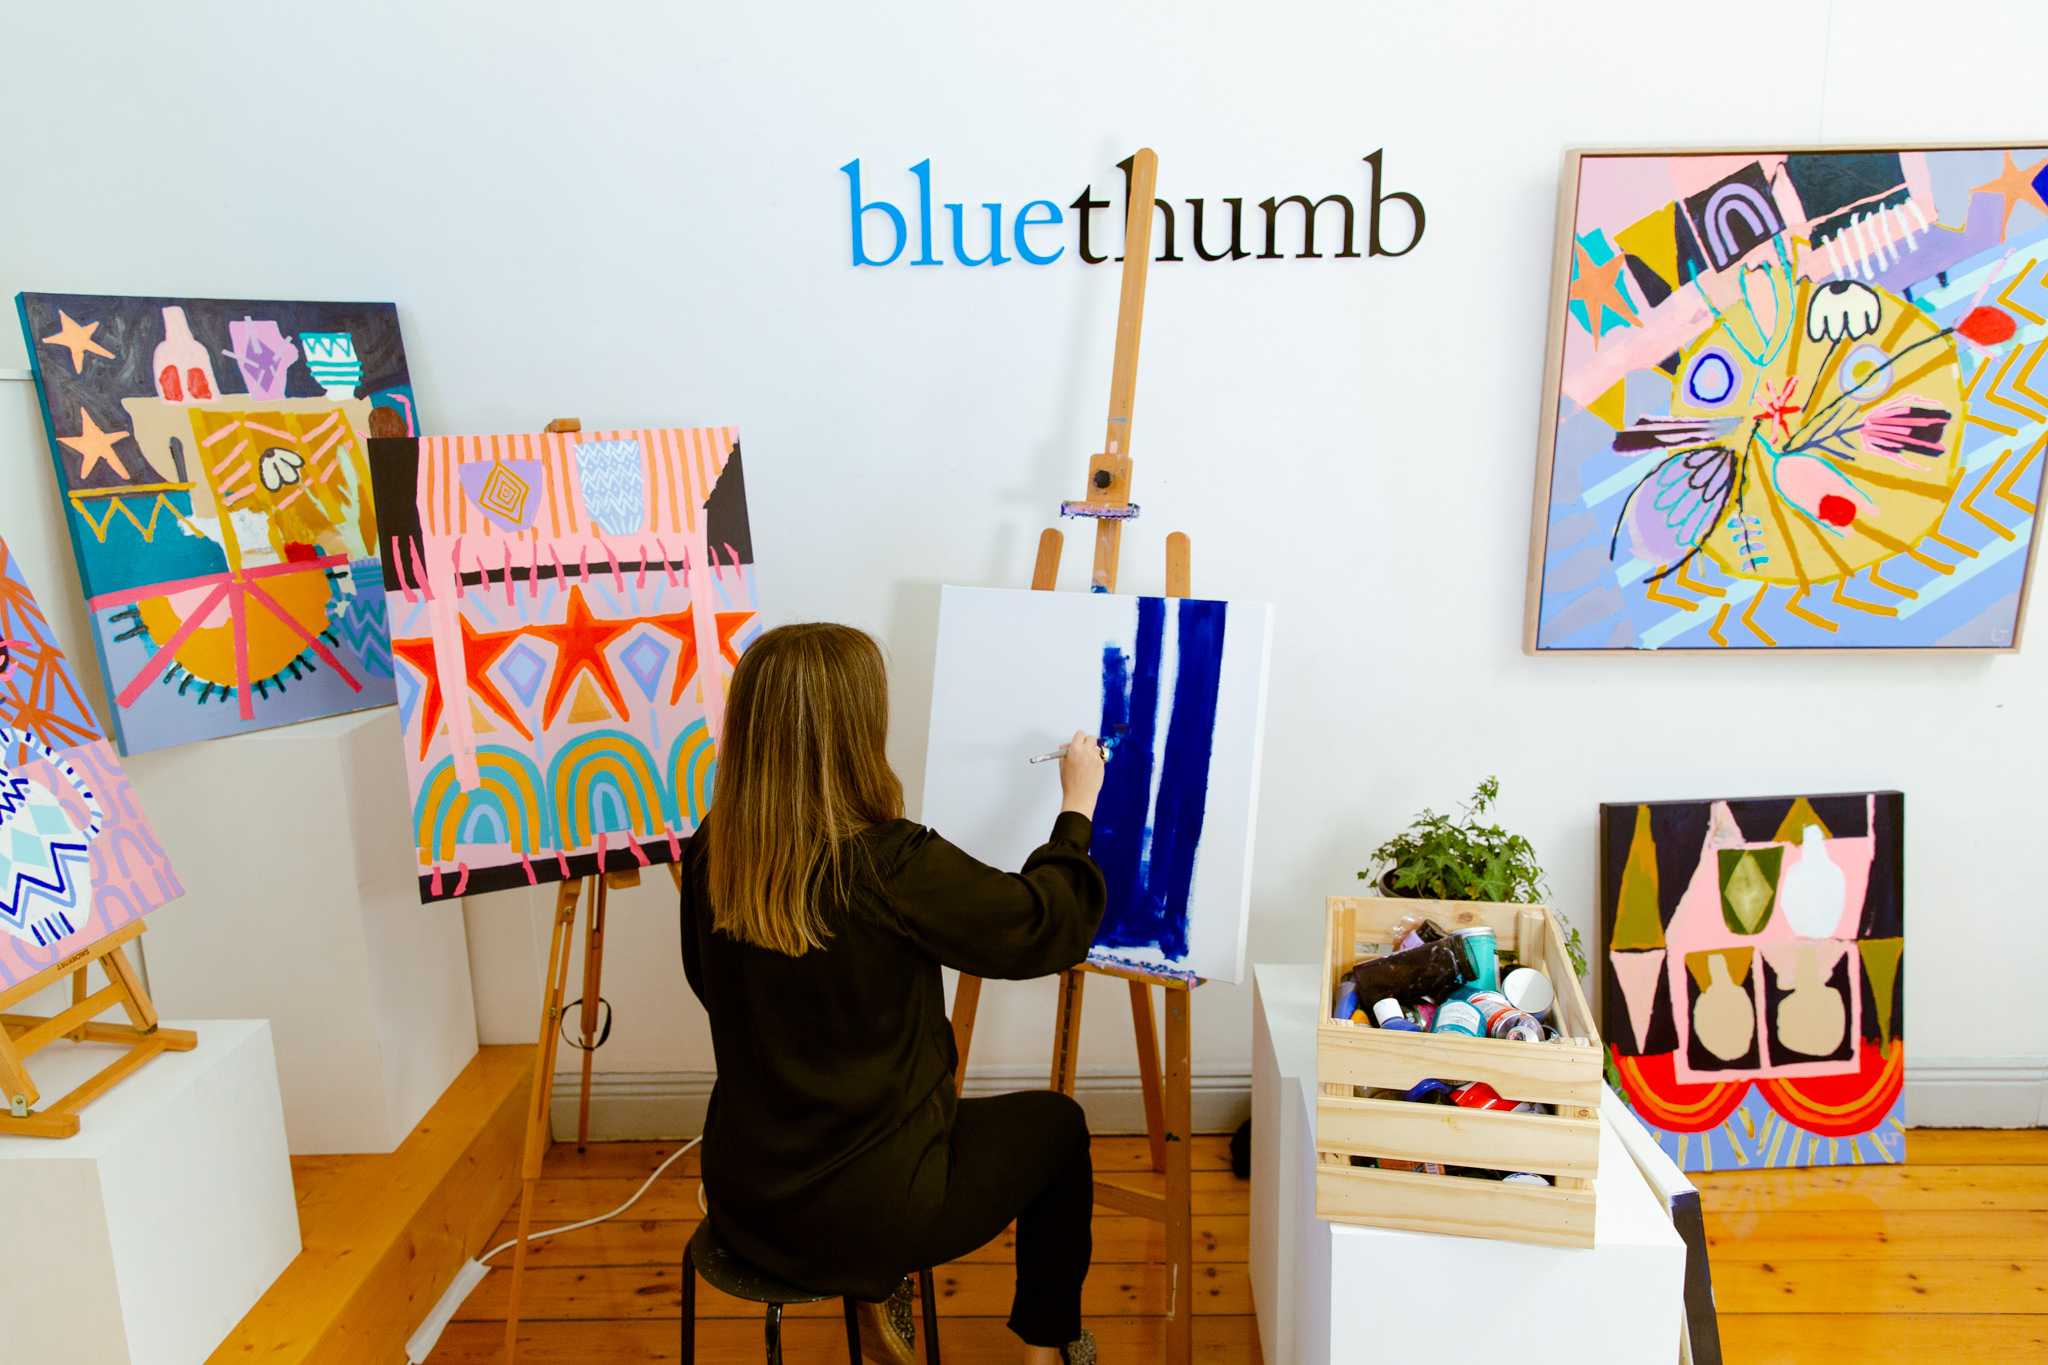 Laura Thomas painting her Soul-inspired artwork.